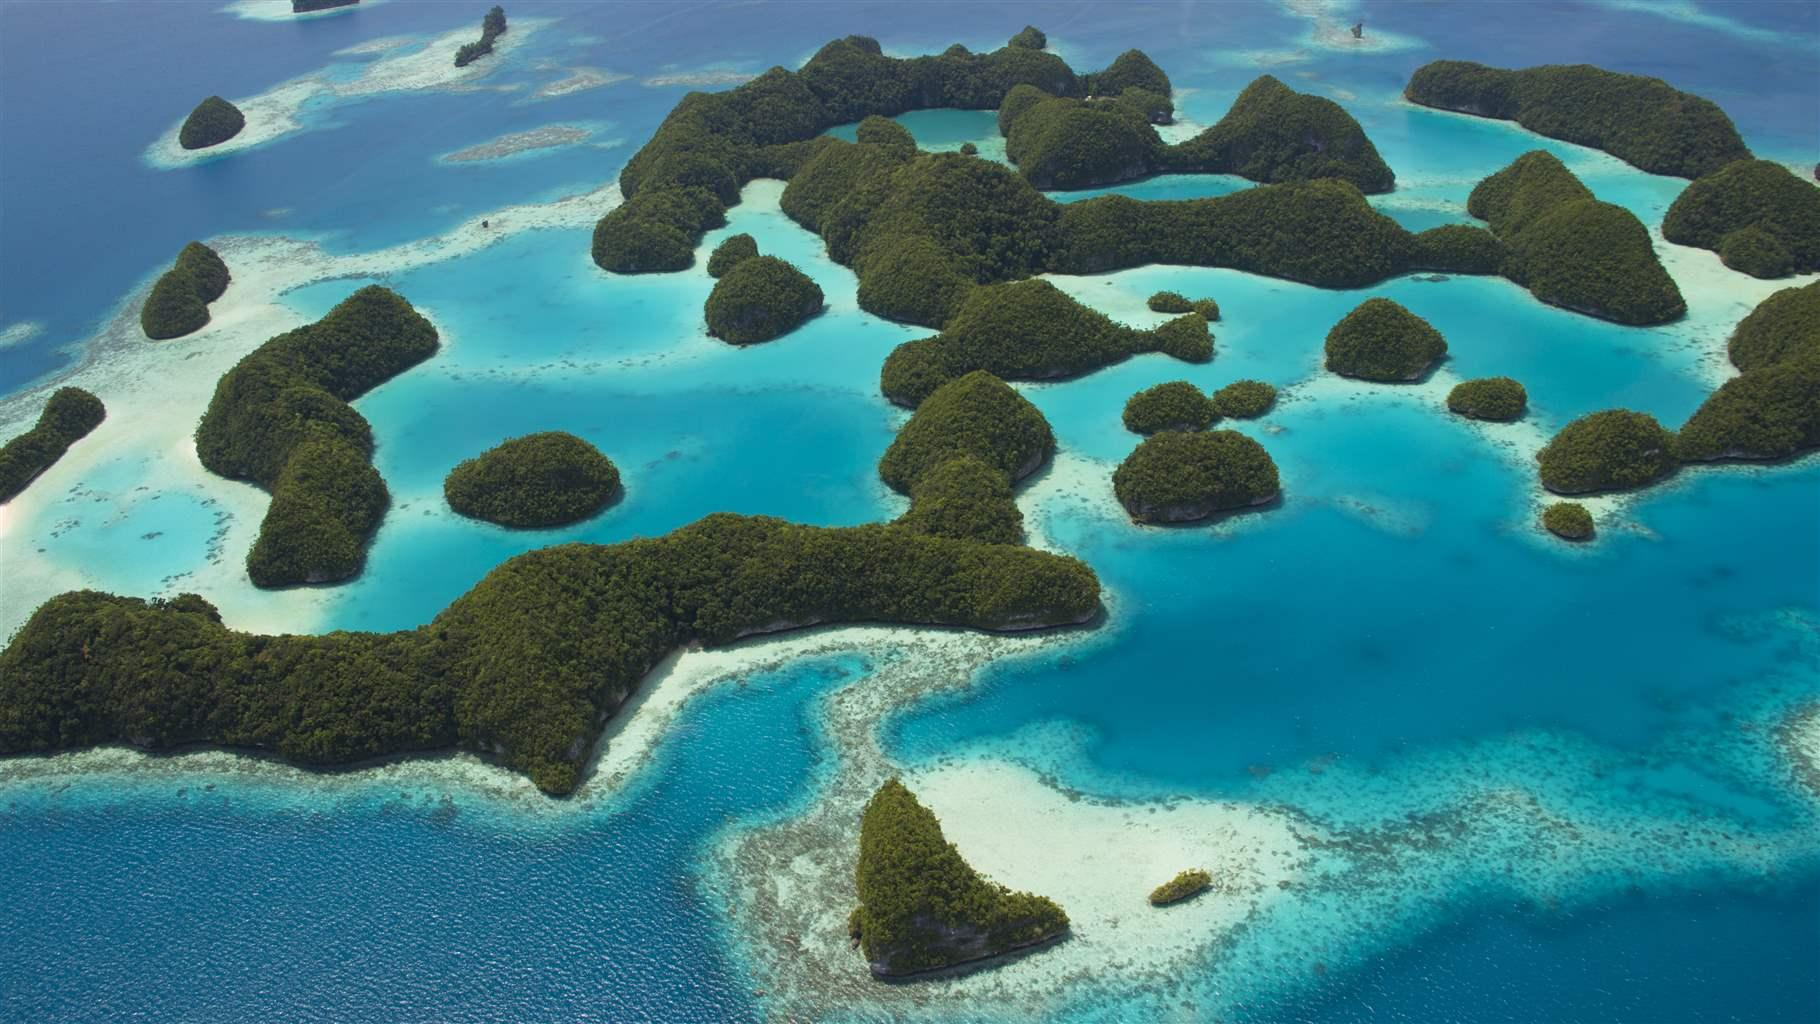 The Case for Marine Protected Areas